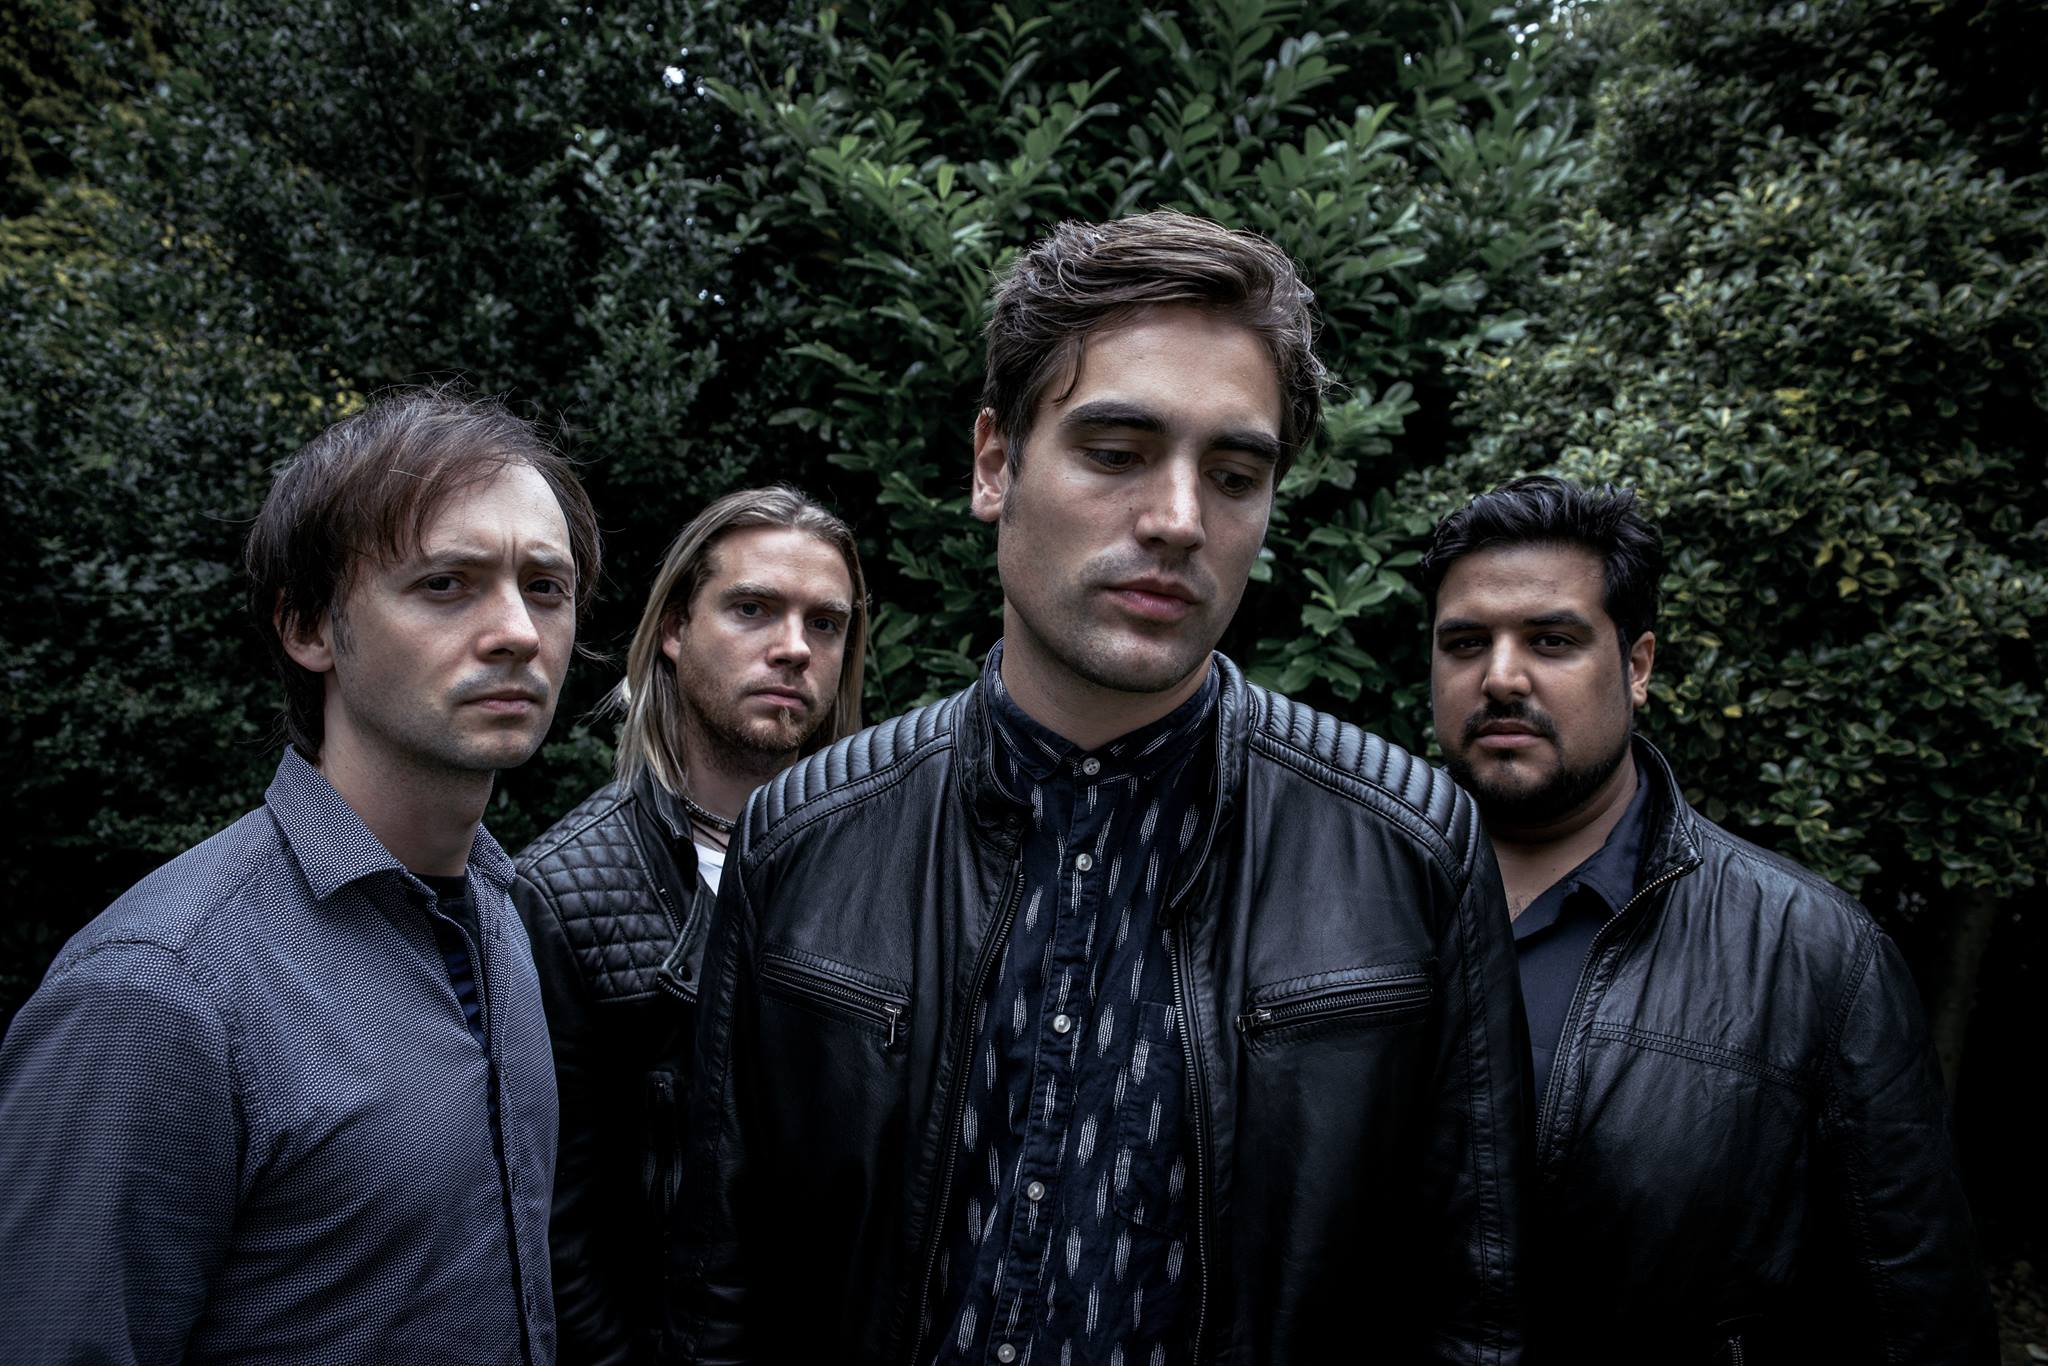 FIGHTSTAR picture